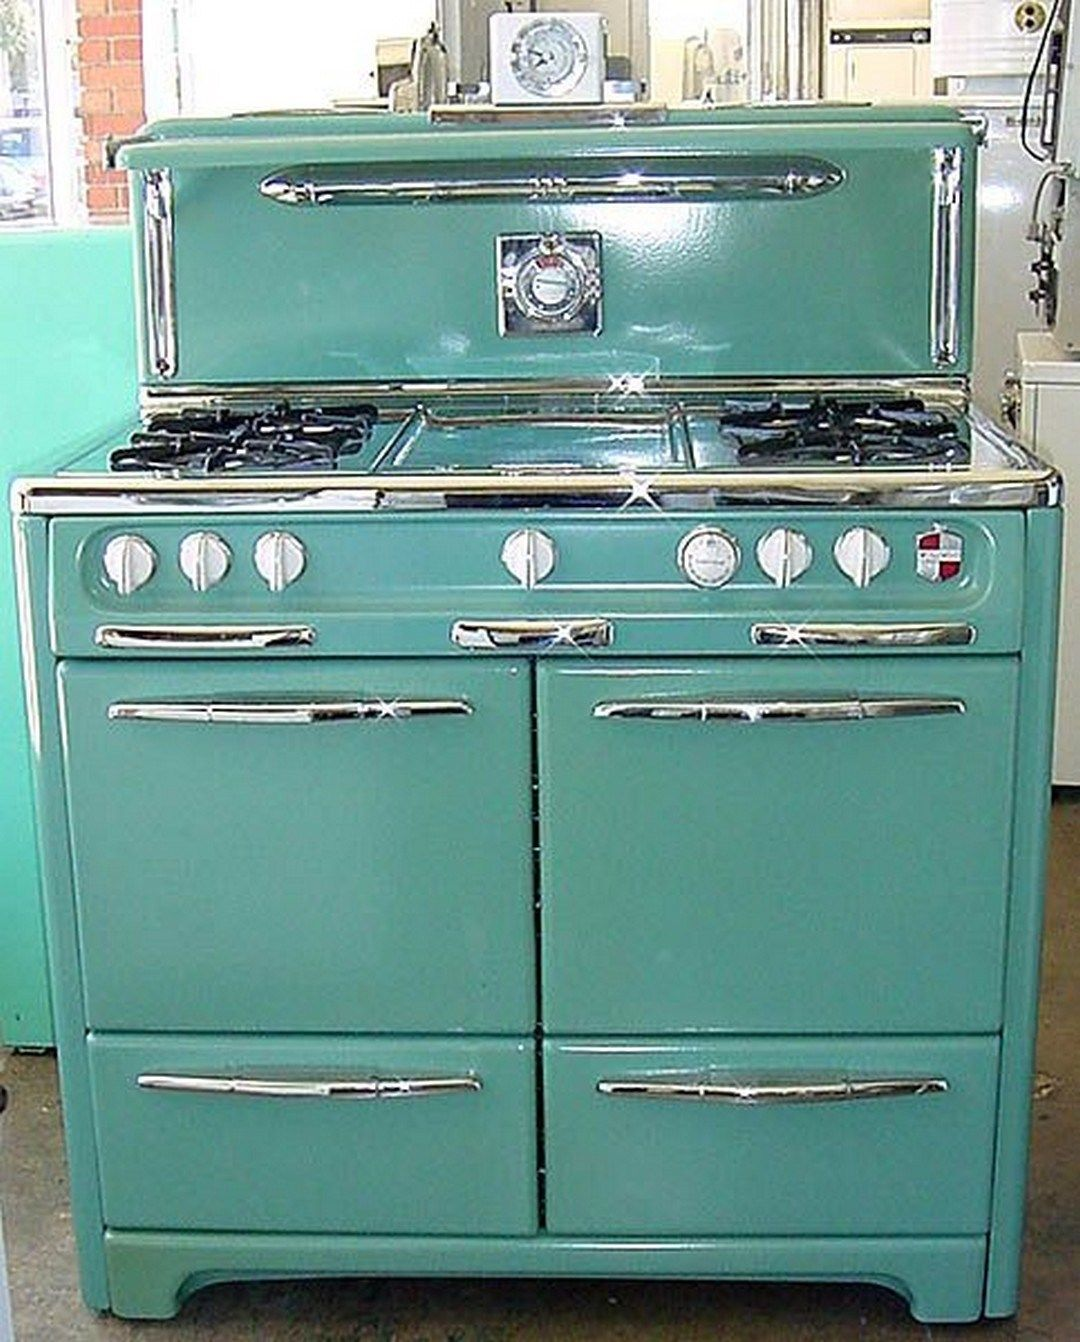 Vintage Style Kitchen Appliance Product And Design 19 Vintage Stoves Retro Home Decor Retro Home